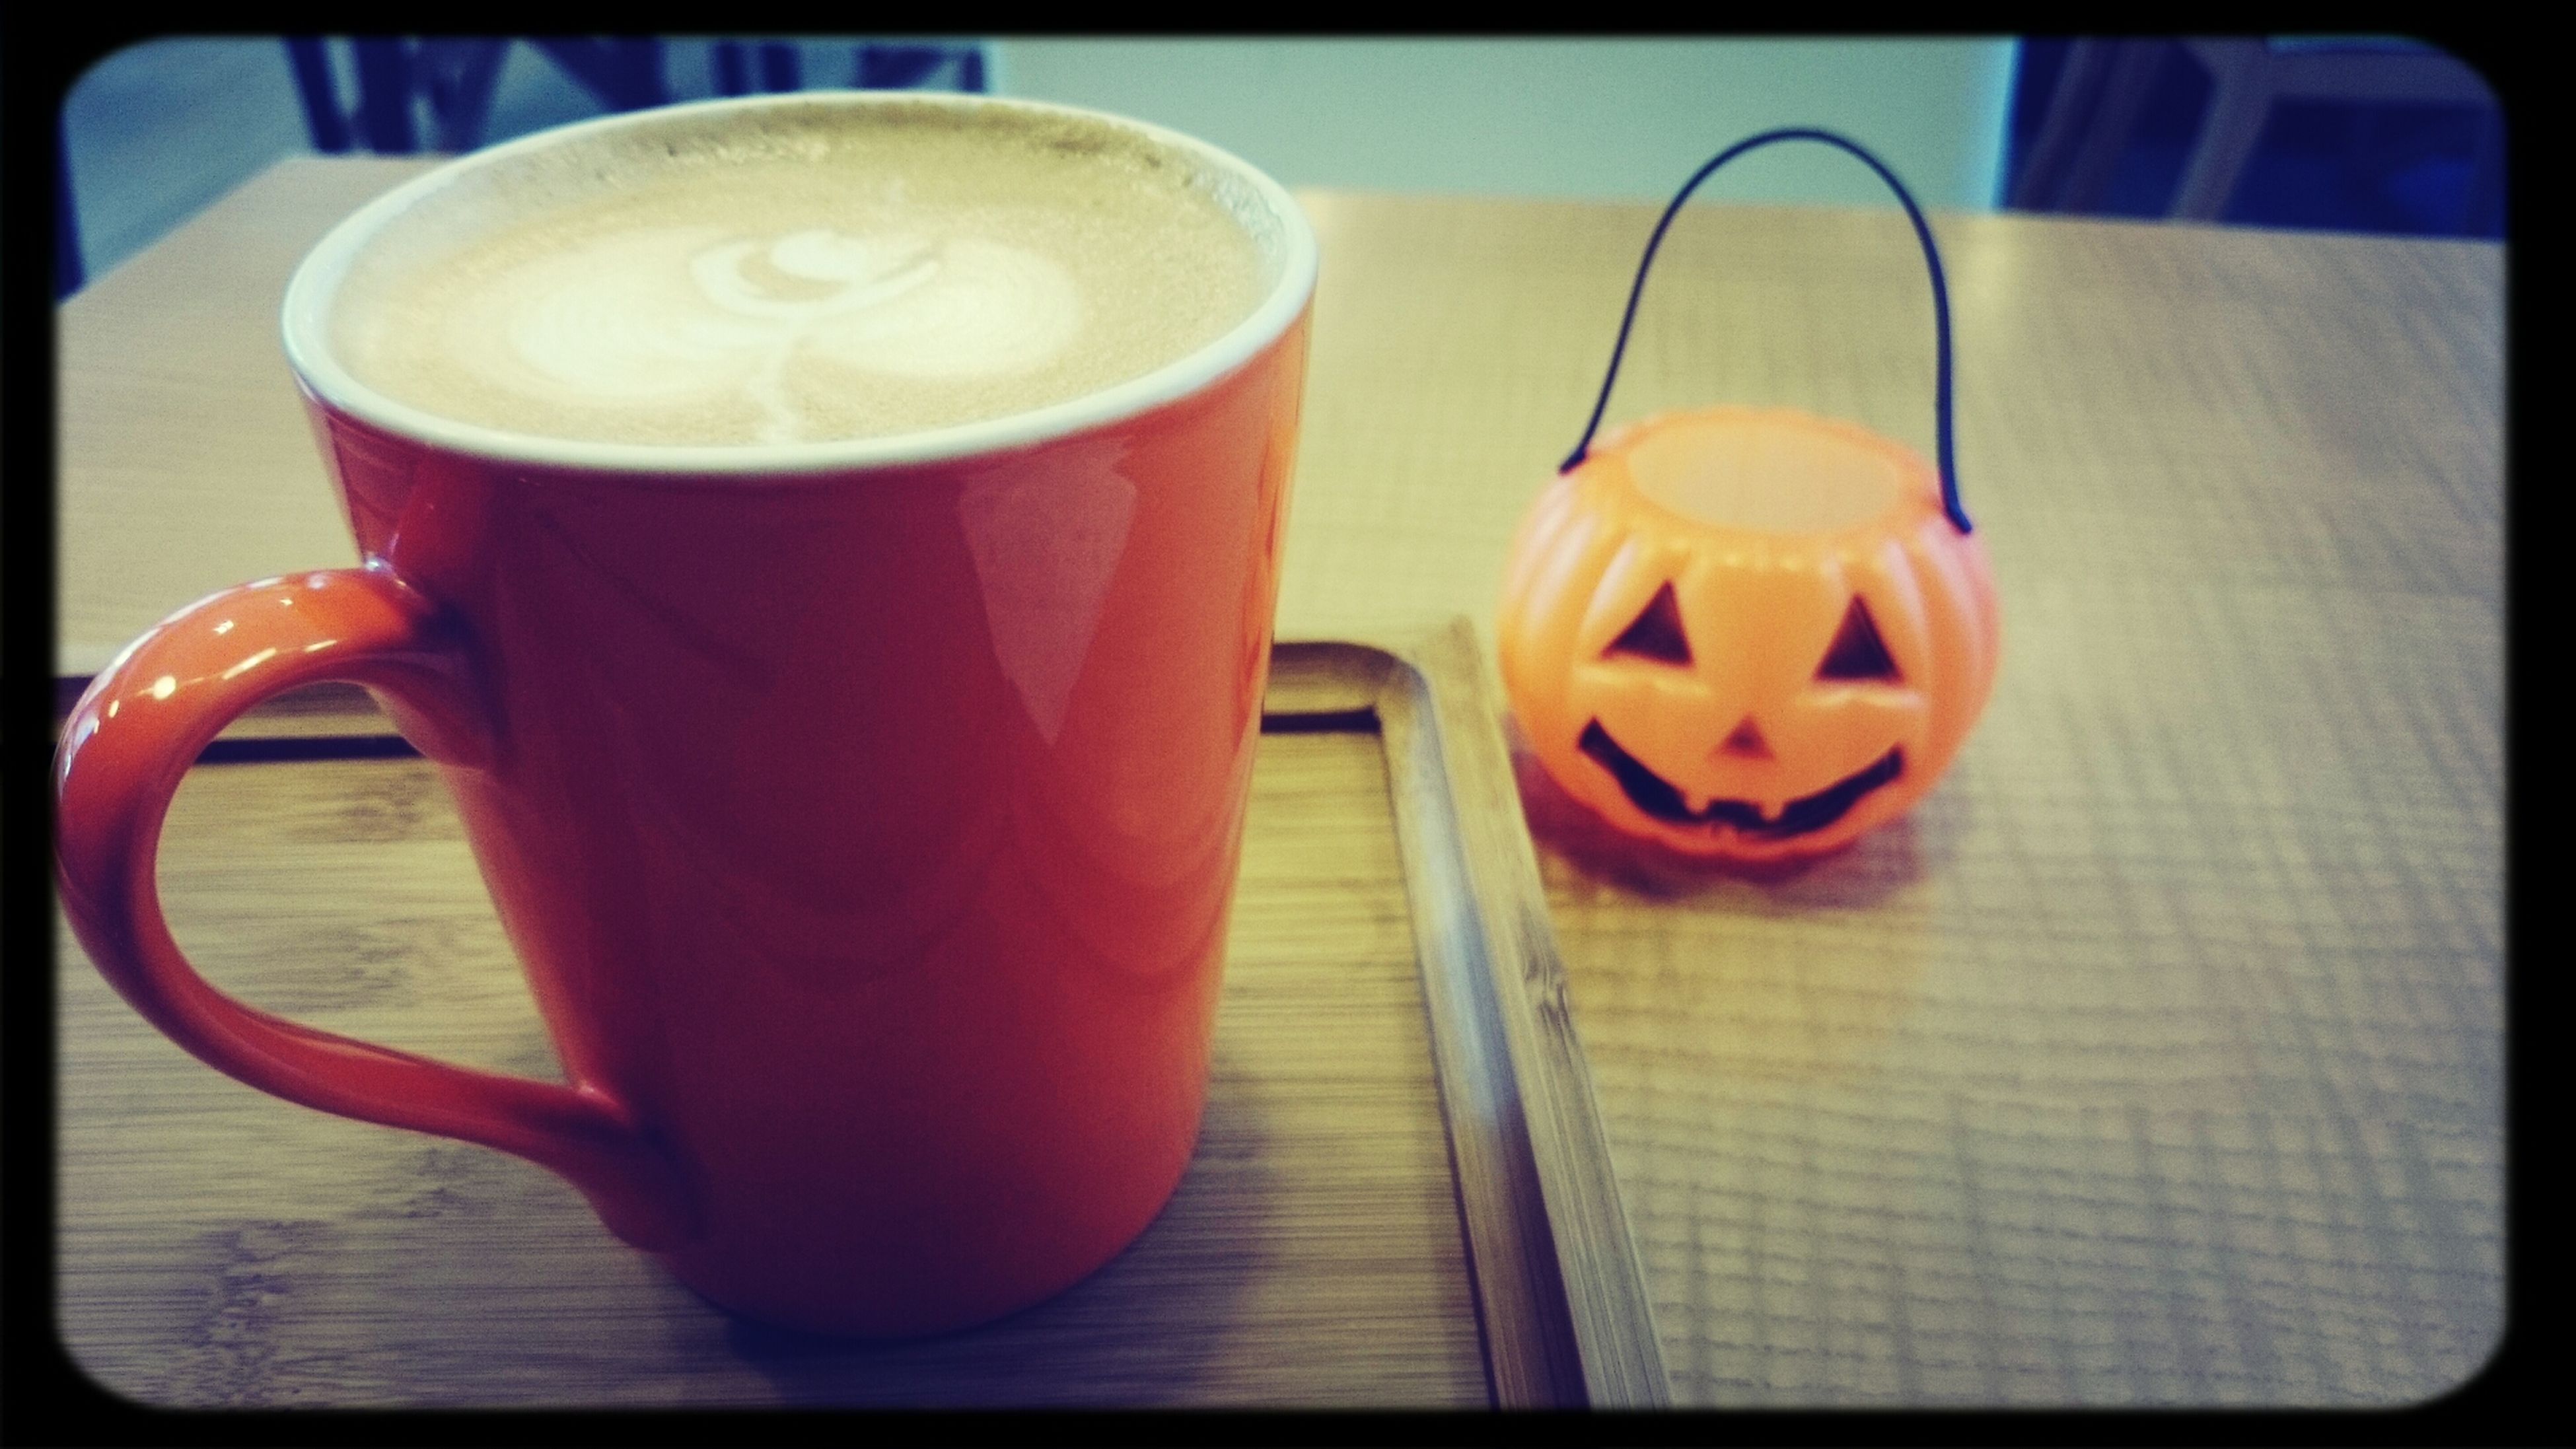 How about a cup of Latte. Drinking A Latte